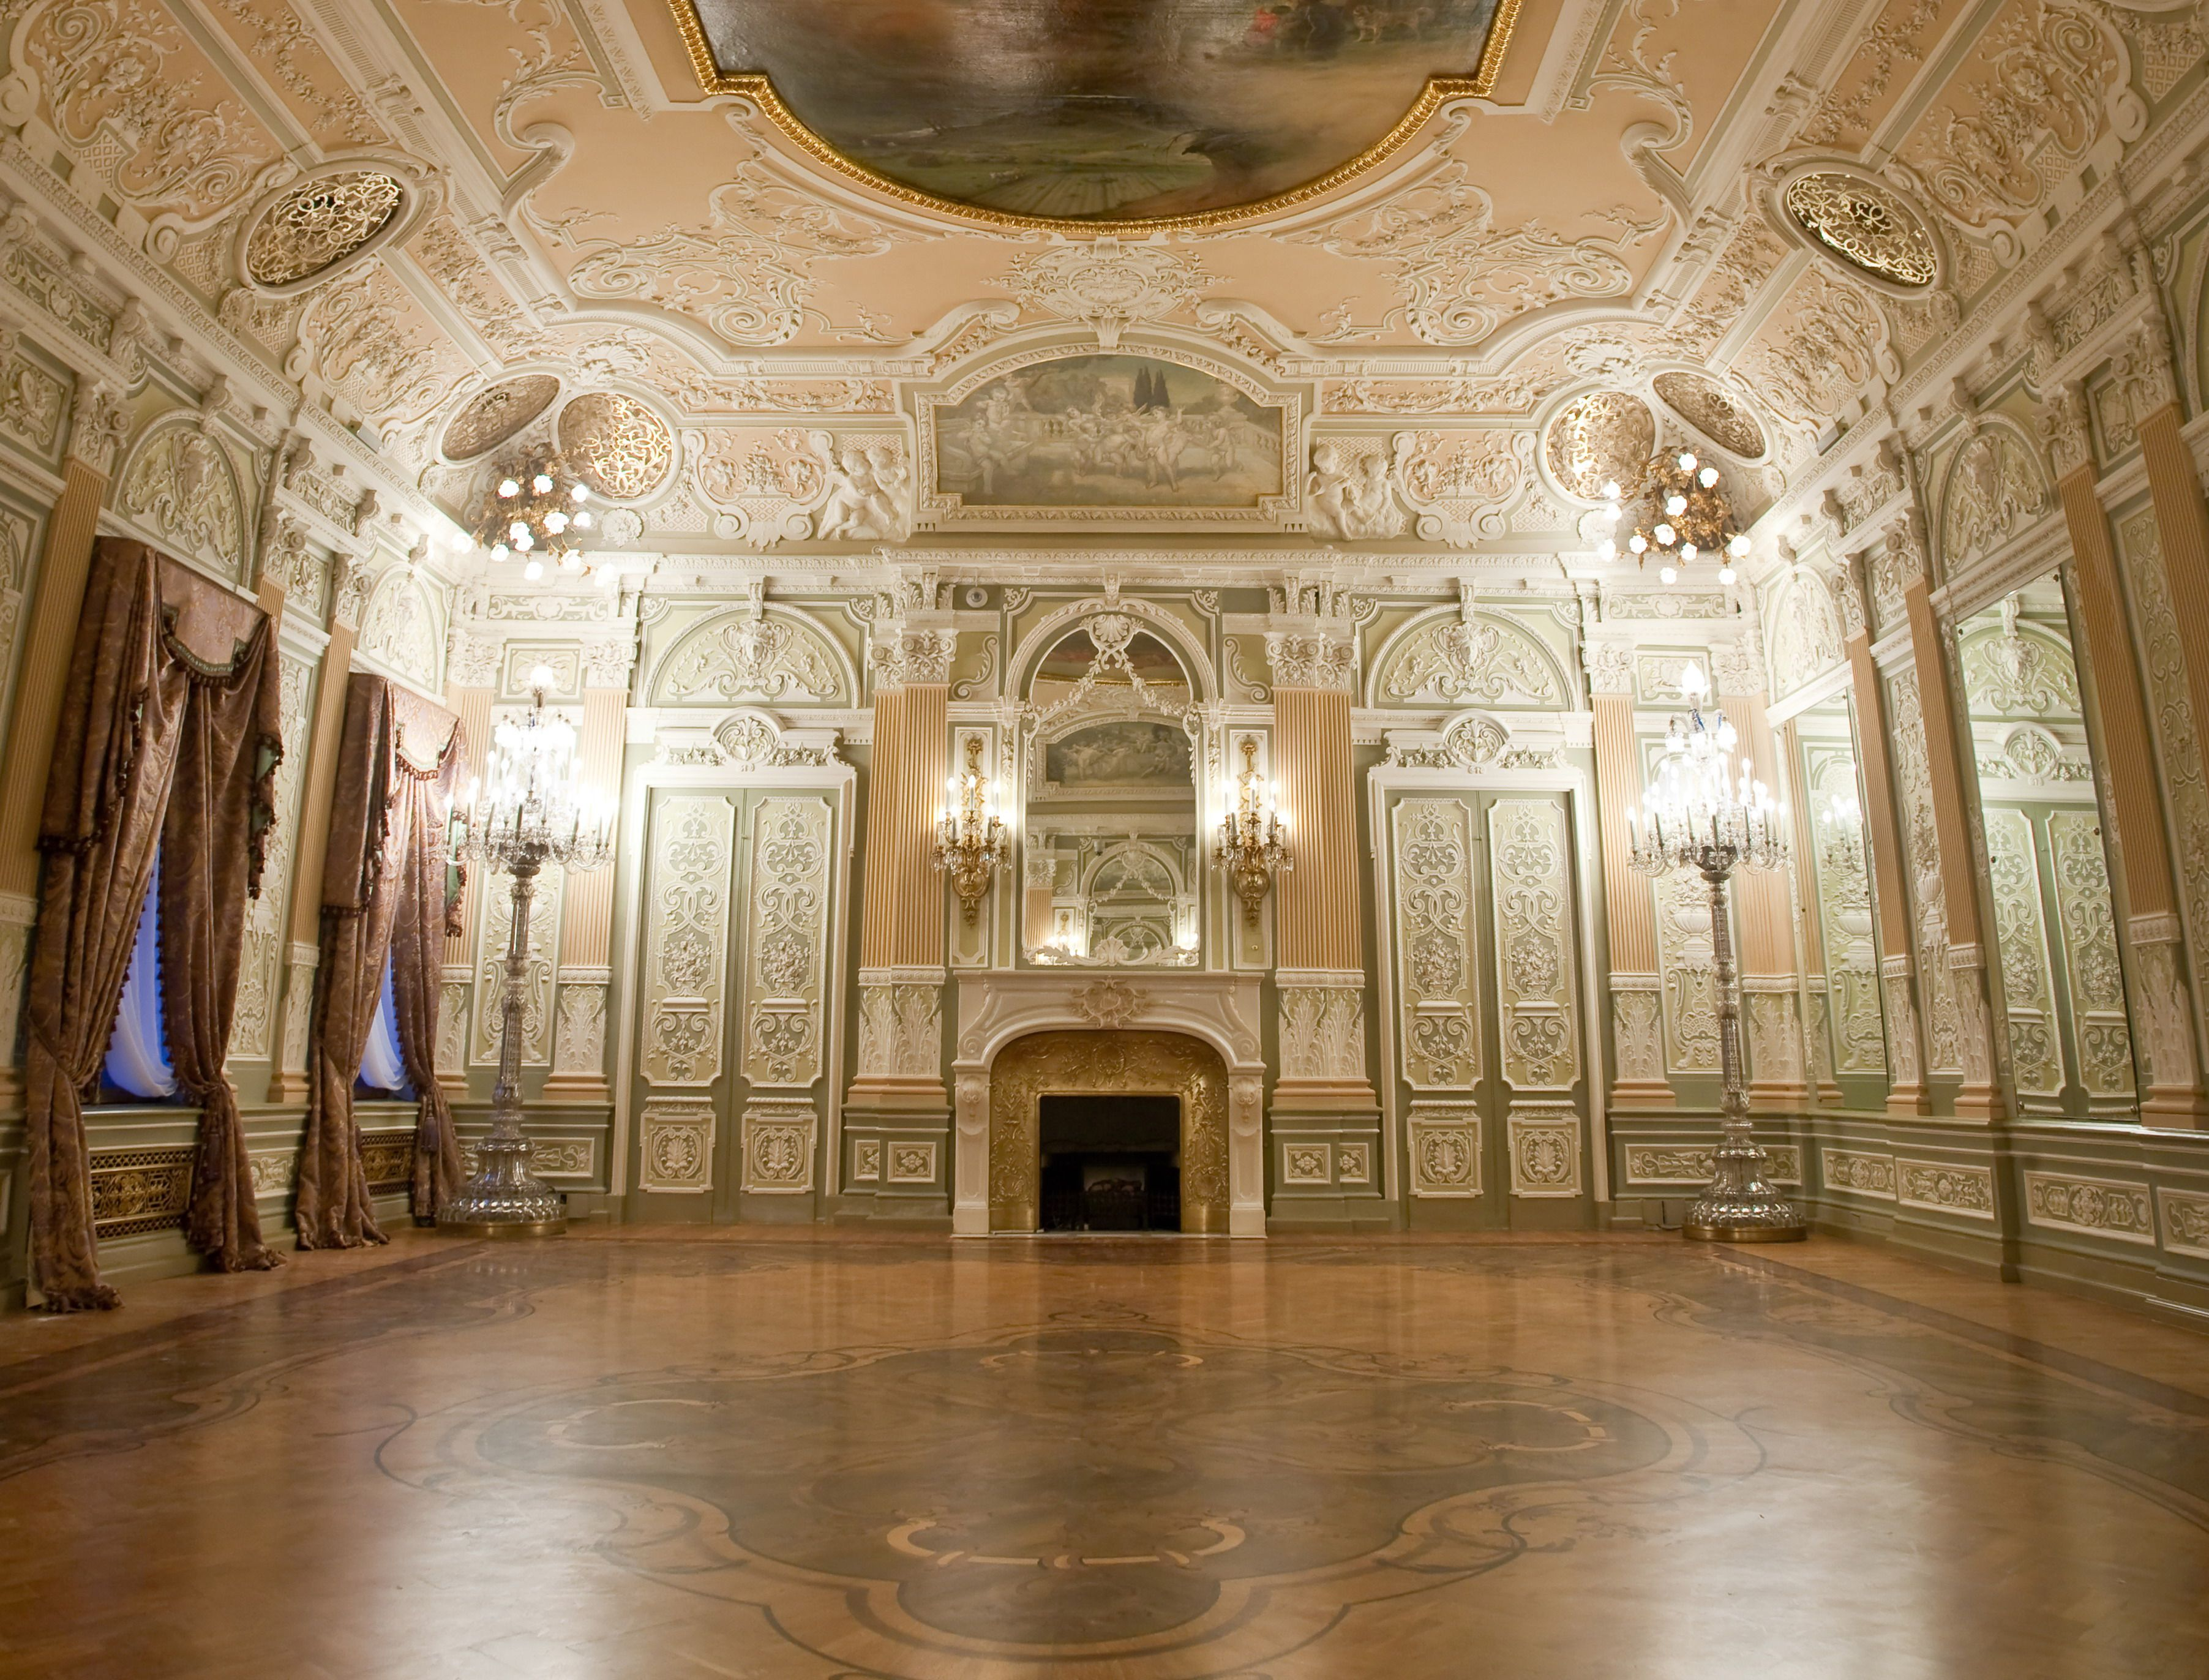 11 best Ballrooms images on Pinterest | Ballrooms, Palaces and Castles